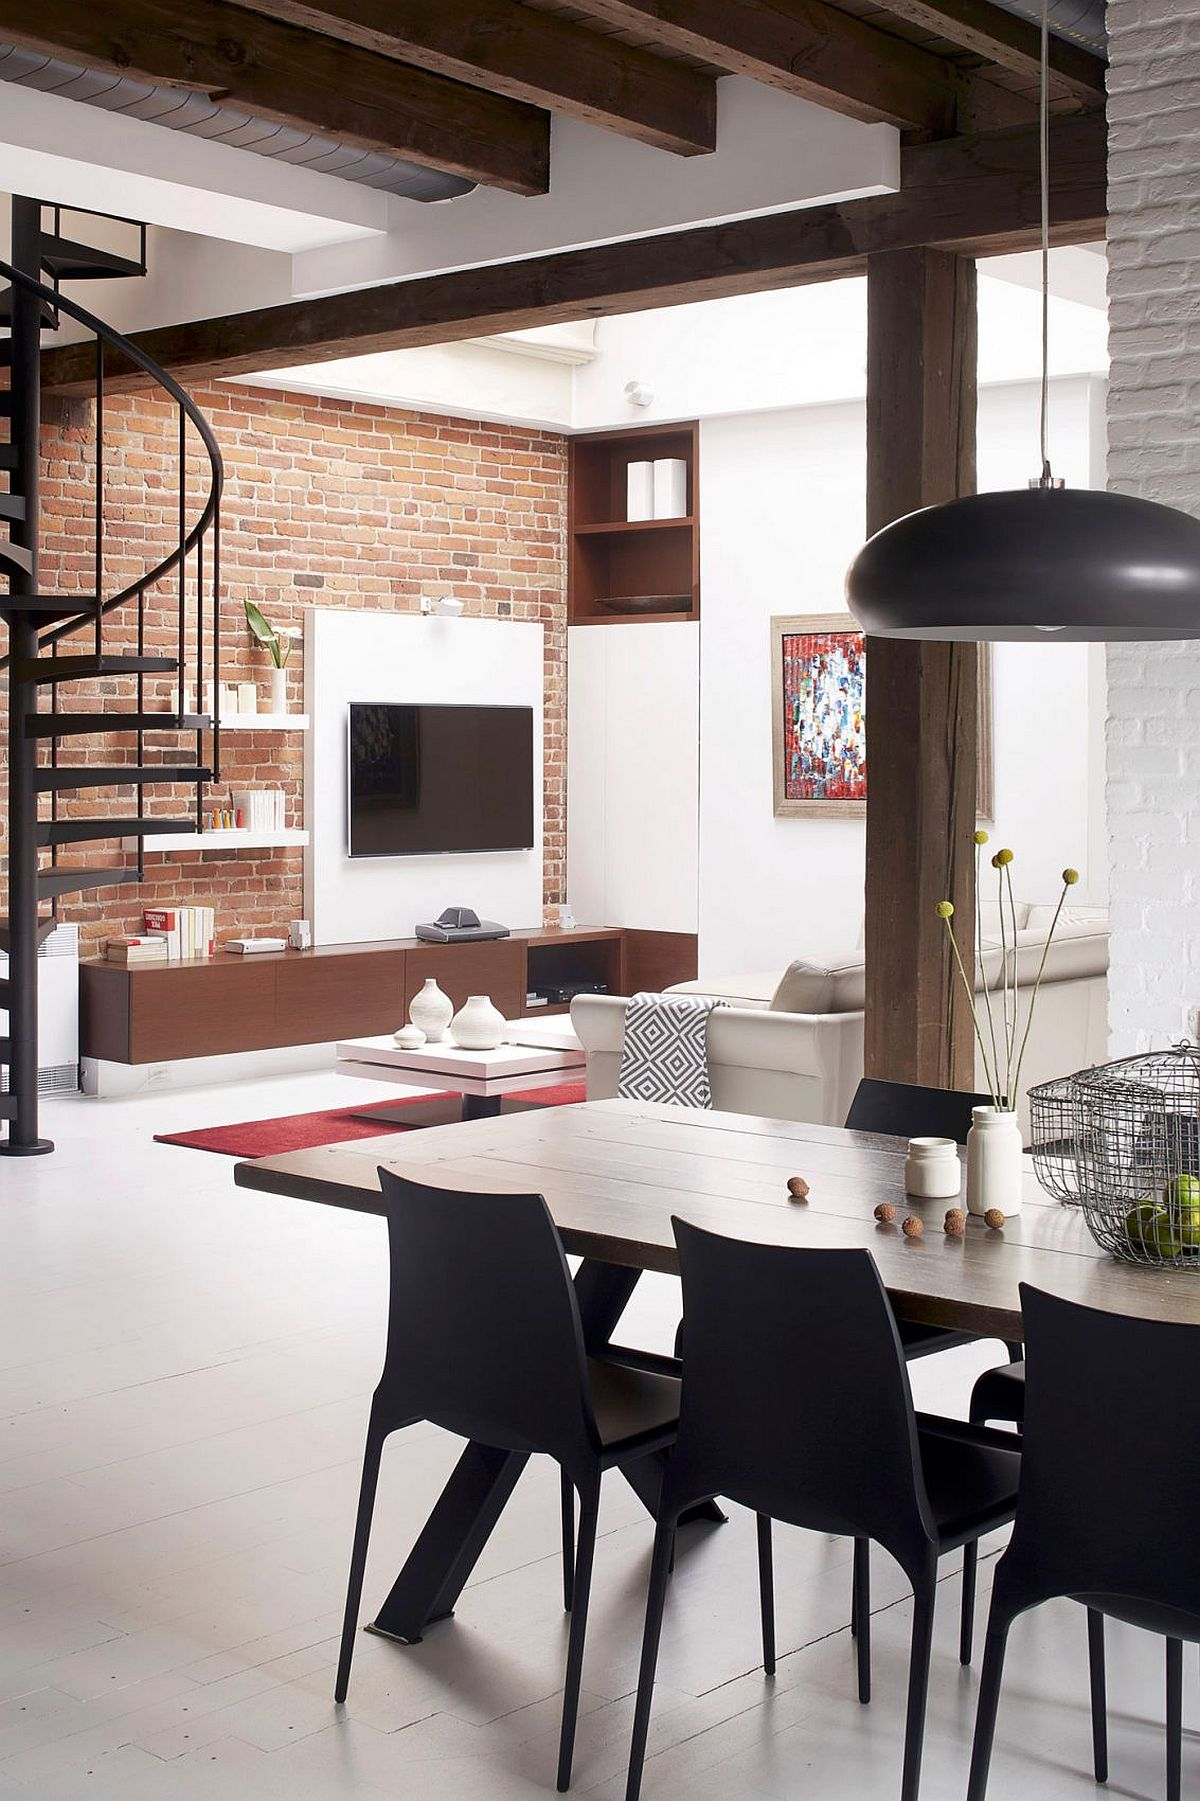 Modern Loft Apartment Bedroom: Old Fire Station Turned Into Dashing Modern Industrial